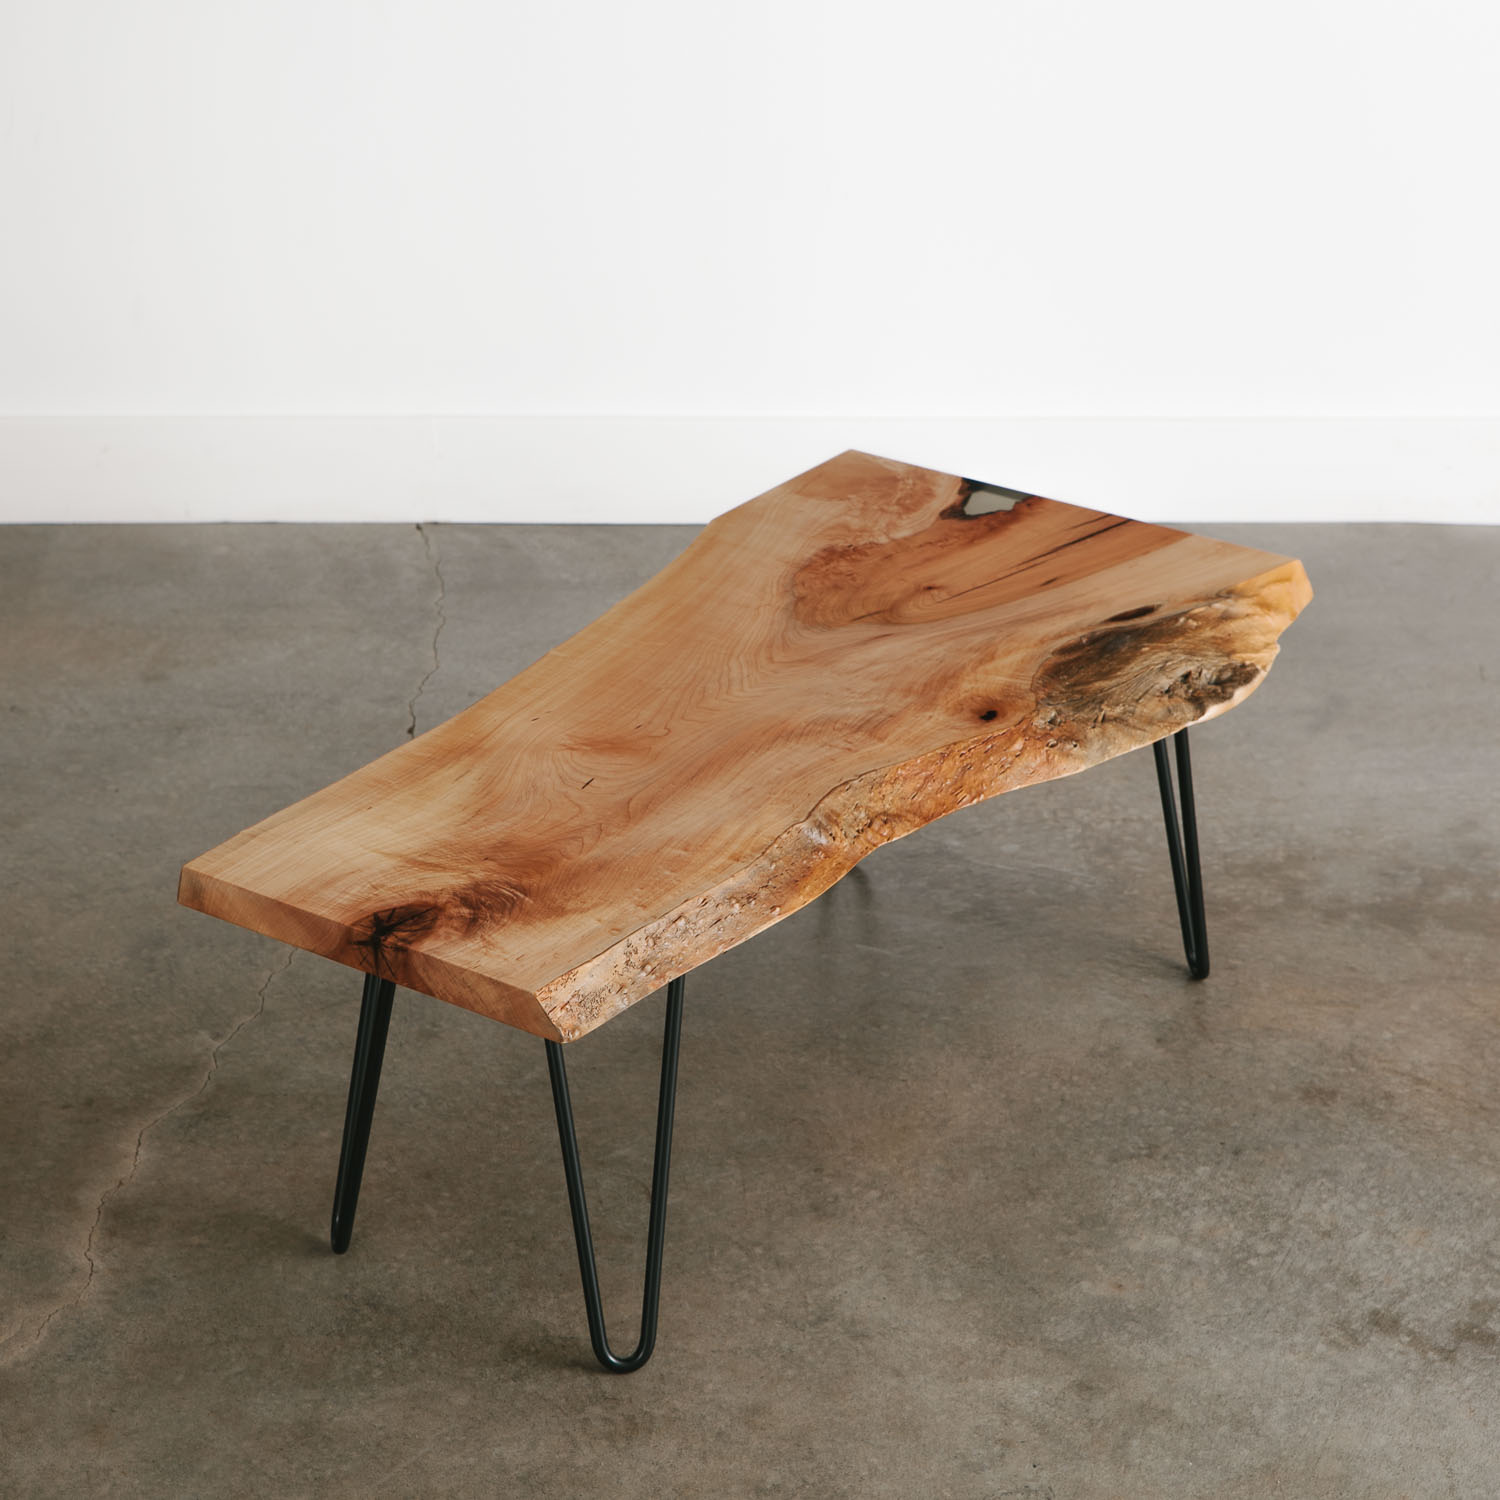 Best Finish For Live Edge Coffee Table: Maple Coffee Table - Elko Hardwoods